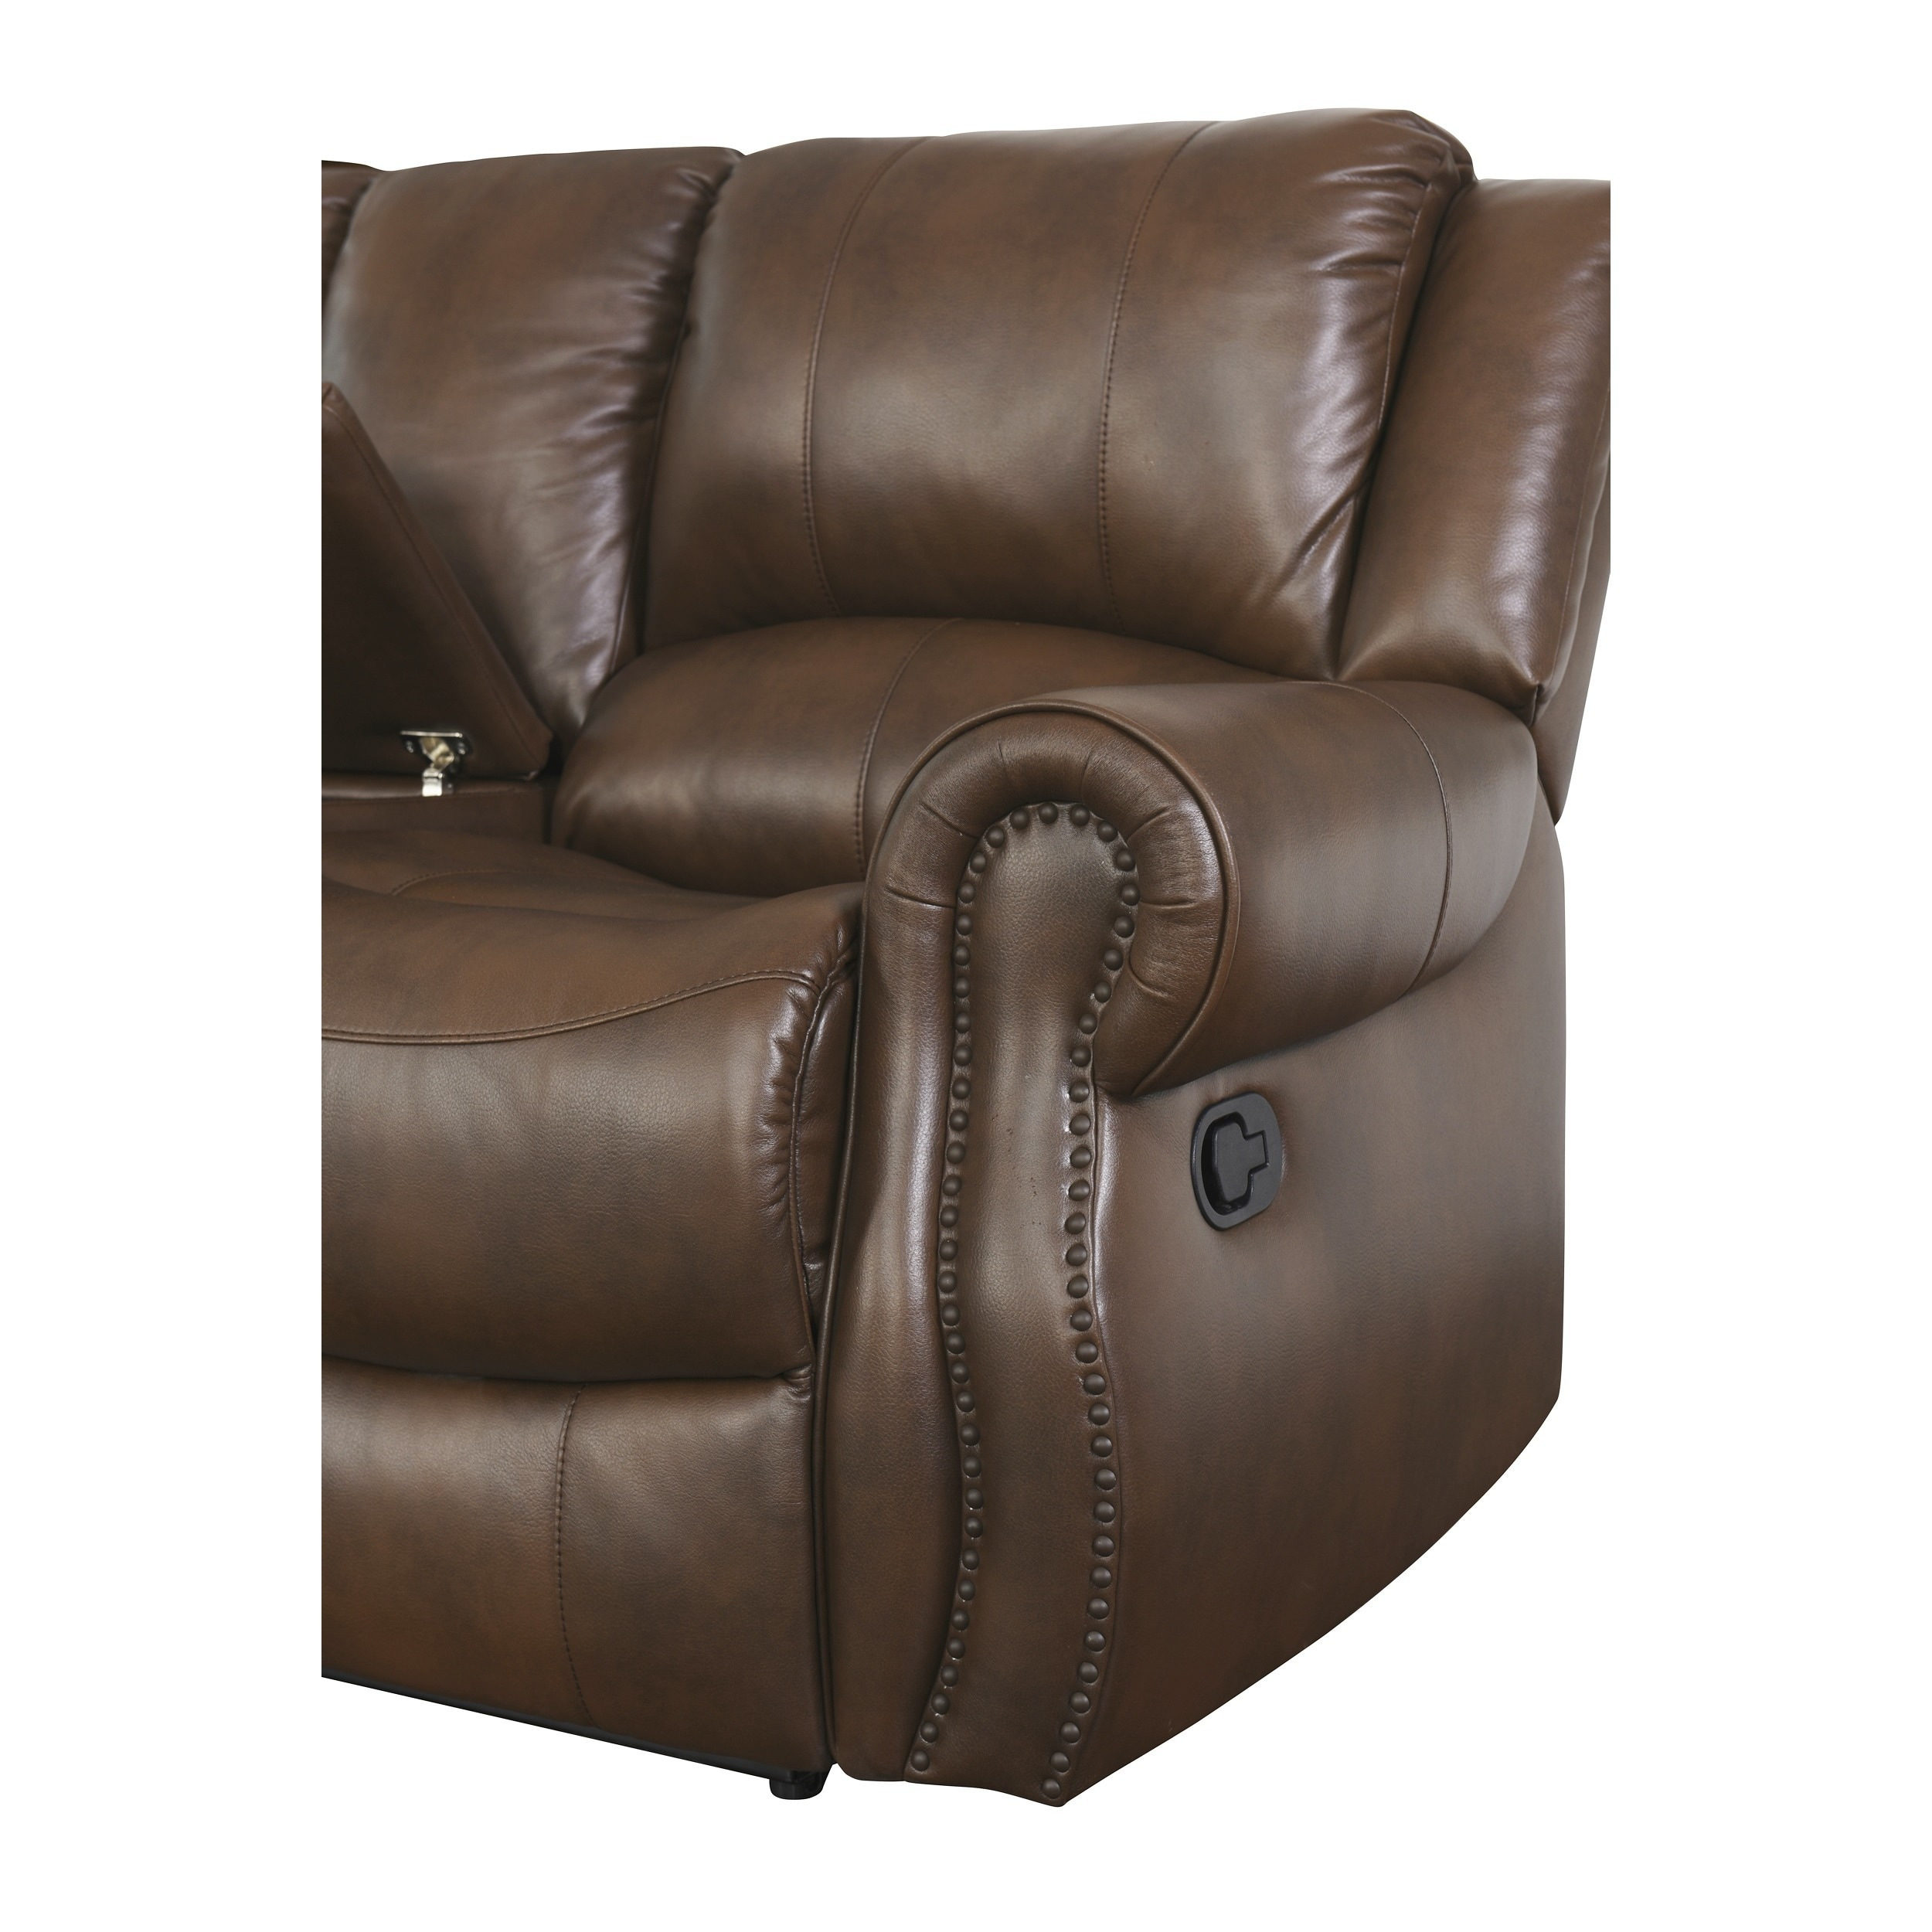 Abbyson Calabasas Mesa Brown Reclining Sofa   Free Shipping Today    Overstock.com   17634570